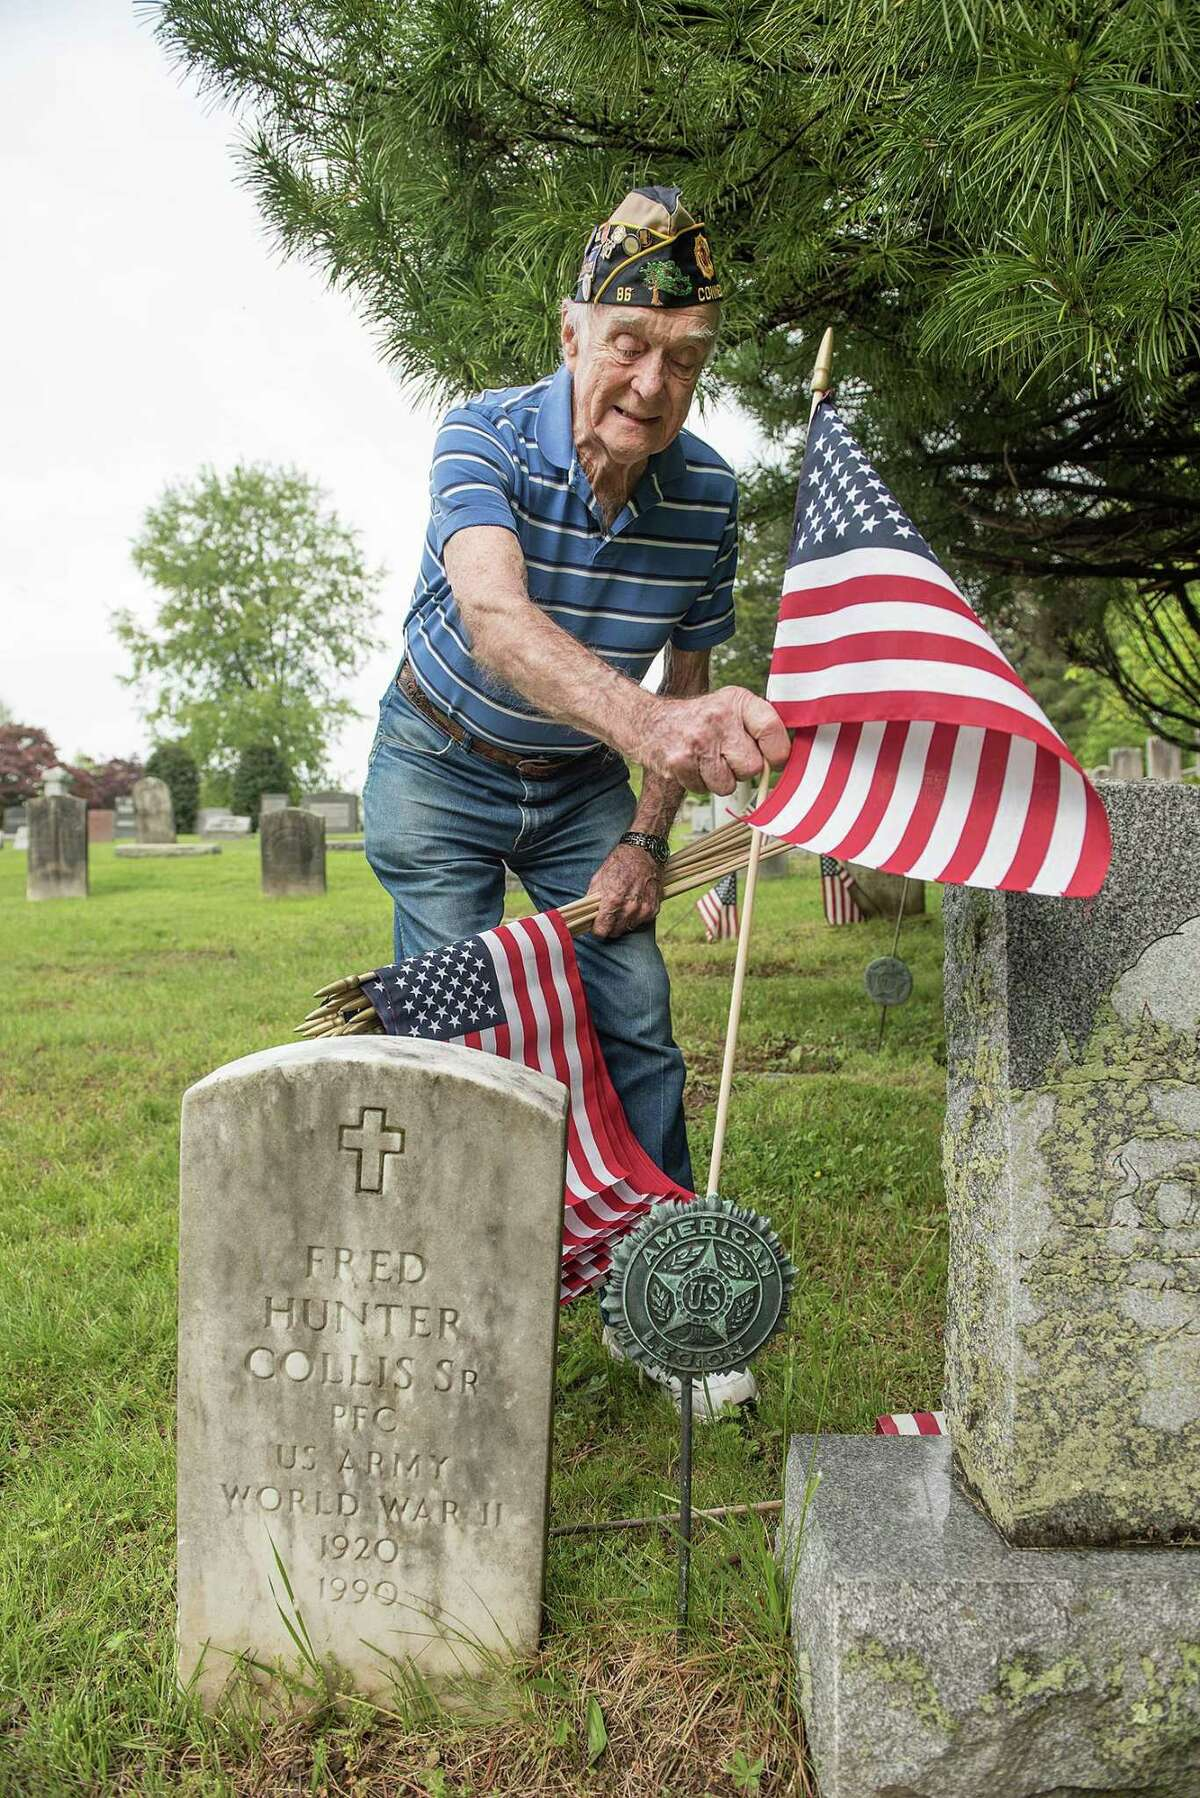 Air Force veteran Bing Ventres places a flag at the grave of Fred Hunter Collis Sr. at Hillside Cemetery on Ridgefield Road in Wilton in a previous year. This Monday, May 31, there will be a small outdoor event at the Hillside Cemetery at 10 a.m. to commemorate Memorial Day. Following the event, there will be a congregation at the American Legion Post 86 on Old Ridgefield Road in Wilton Center, where individually wrapped and prepared food will be handed out to visitors to eat at the property's picnic tables or to take home. There will be no Memorial Day parade. As planning for the parade is typically started at the top of the year, uncertainty around distancing protocols caused difficulties in preperation, according to the parade committee. American flags will also be placed on each veteran's grave.